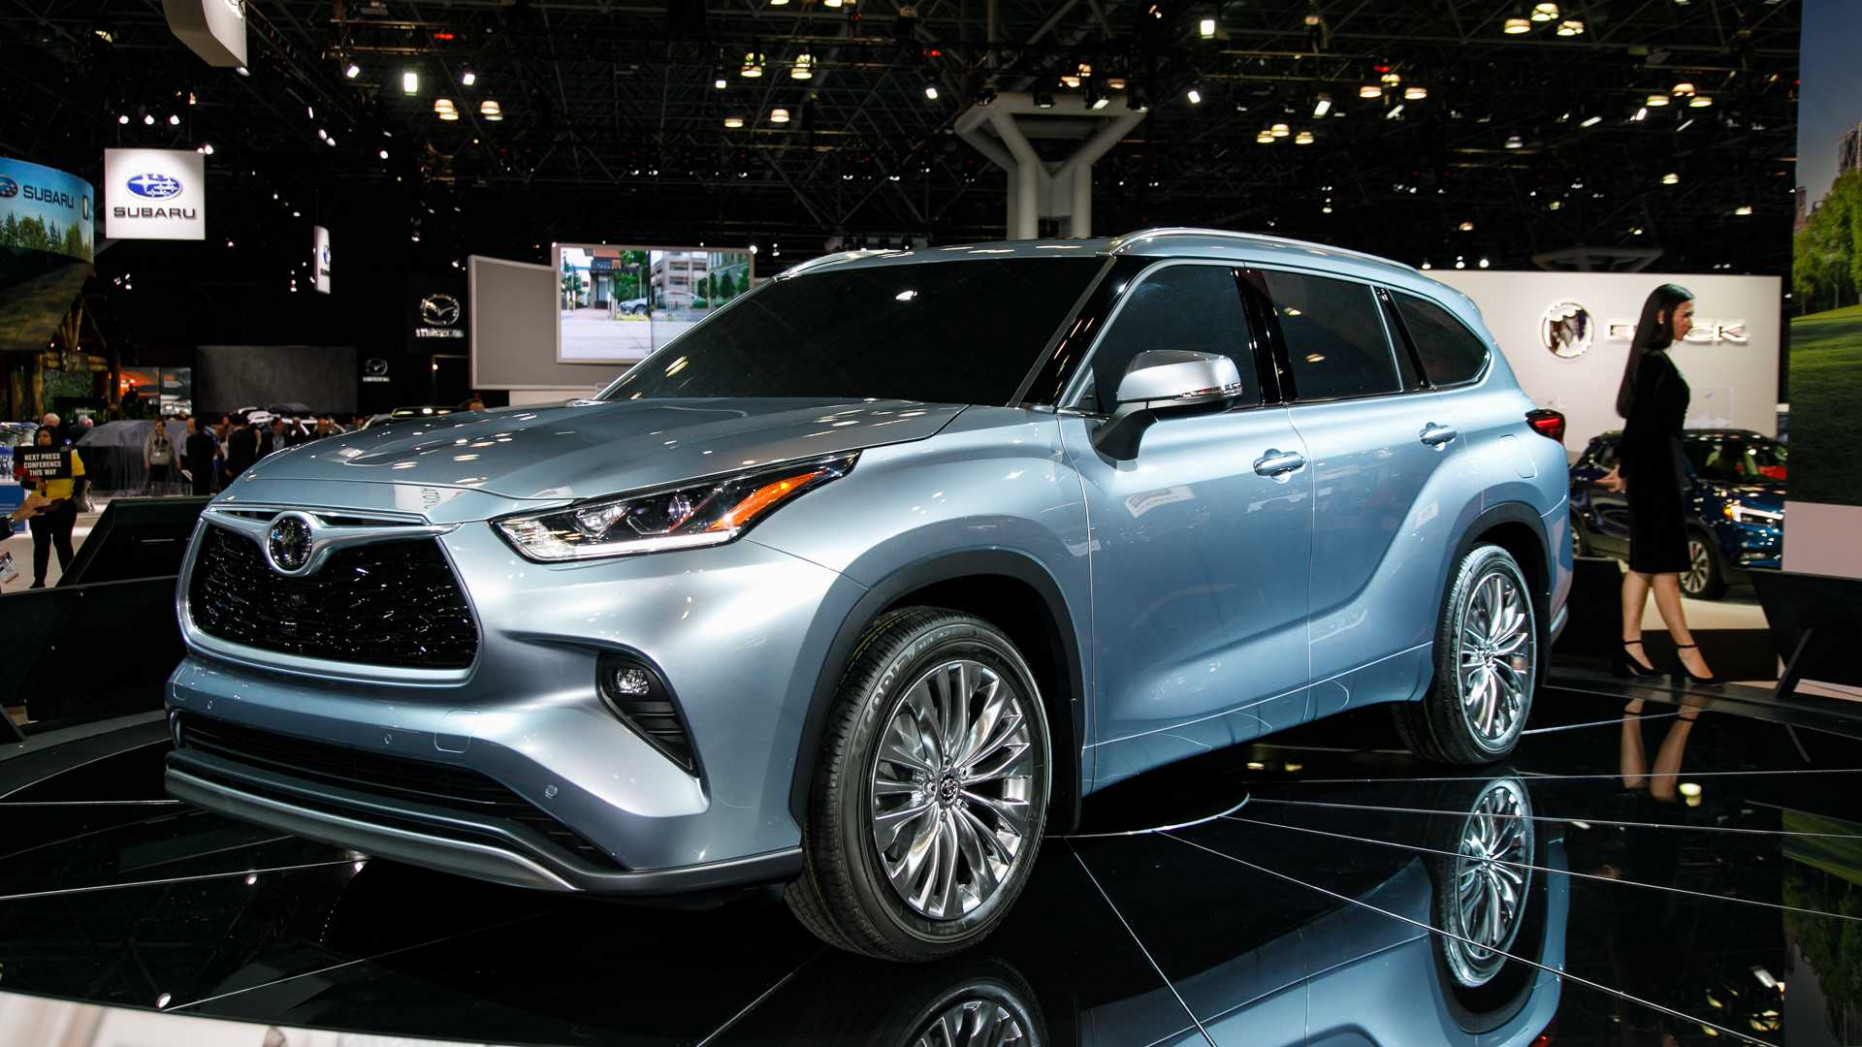 Video: 12 Toyota Highlander Is The Brand's Best Looking Yet